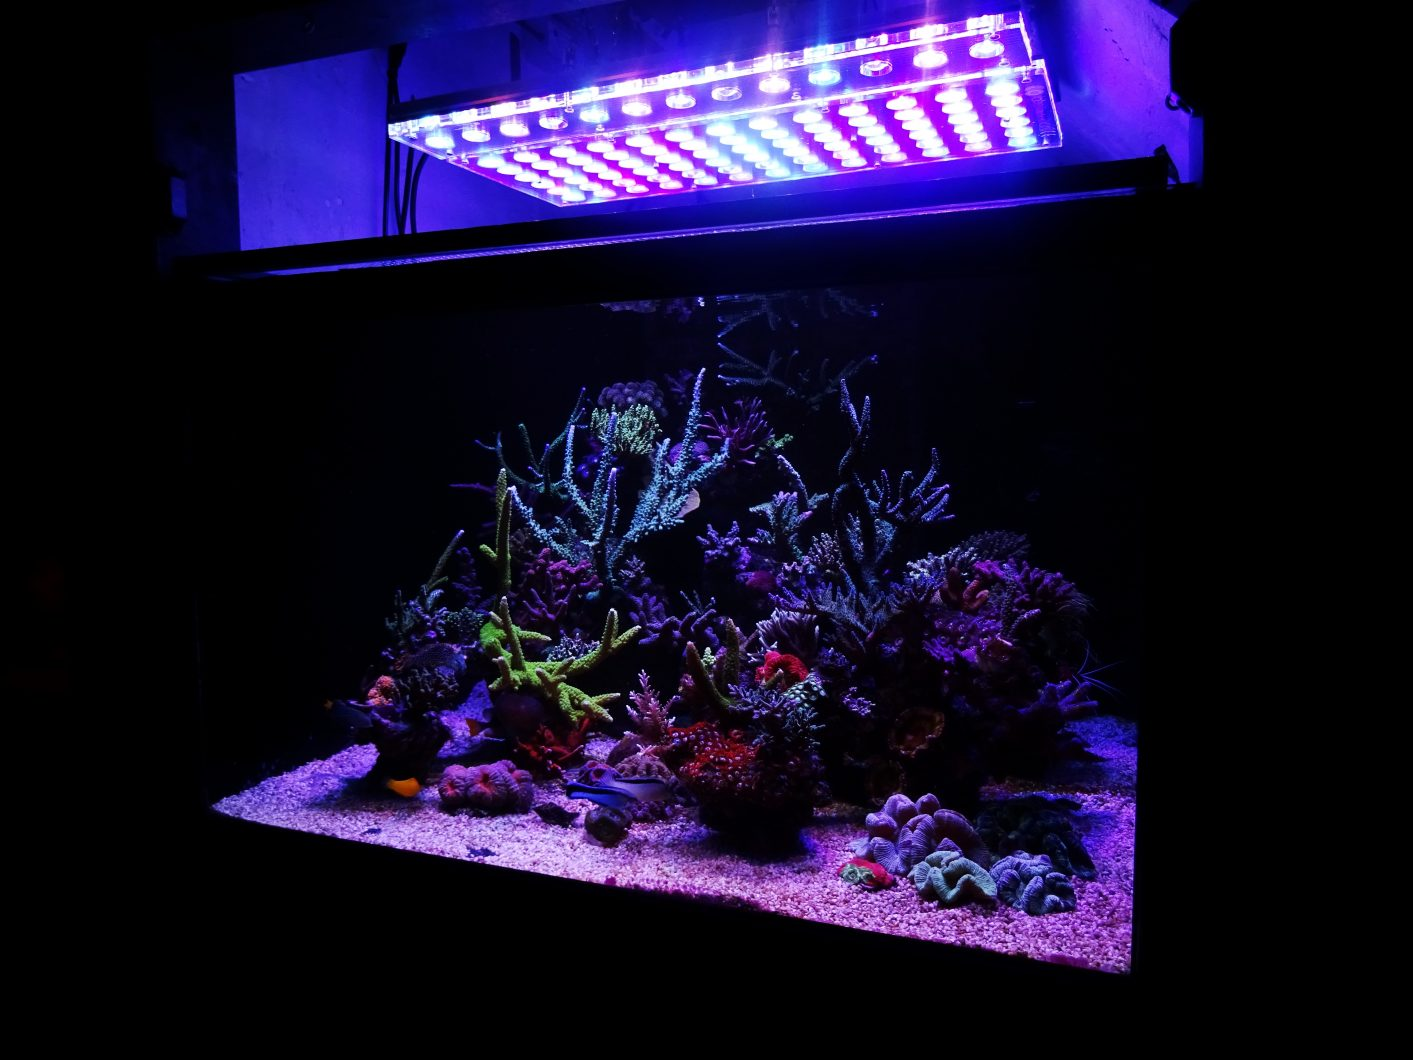 Best-Aquarium-LED-Light-Orphek